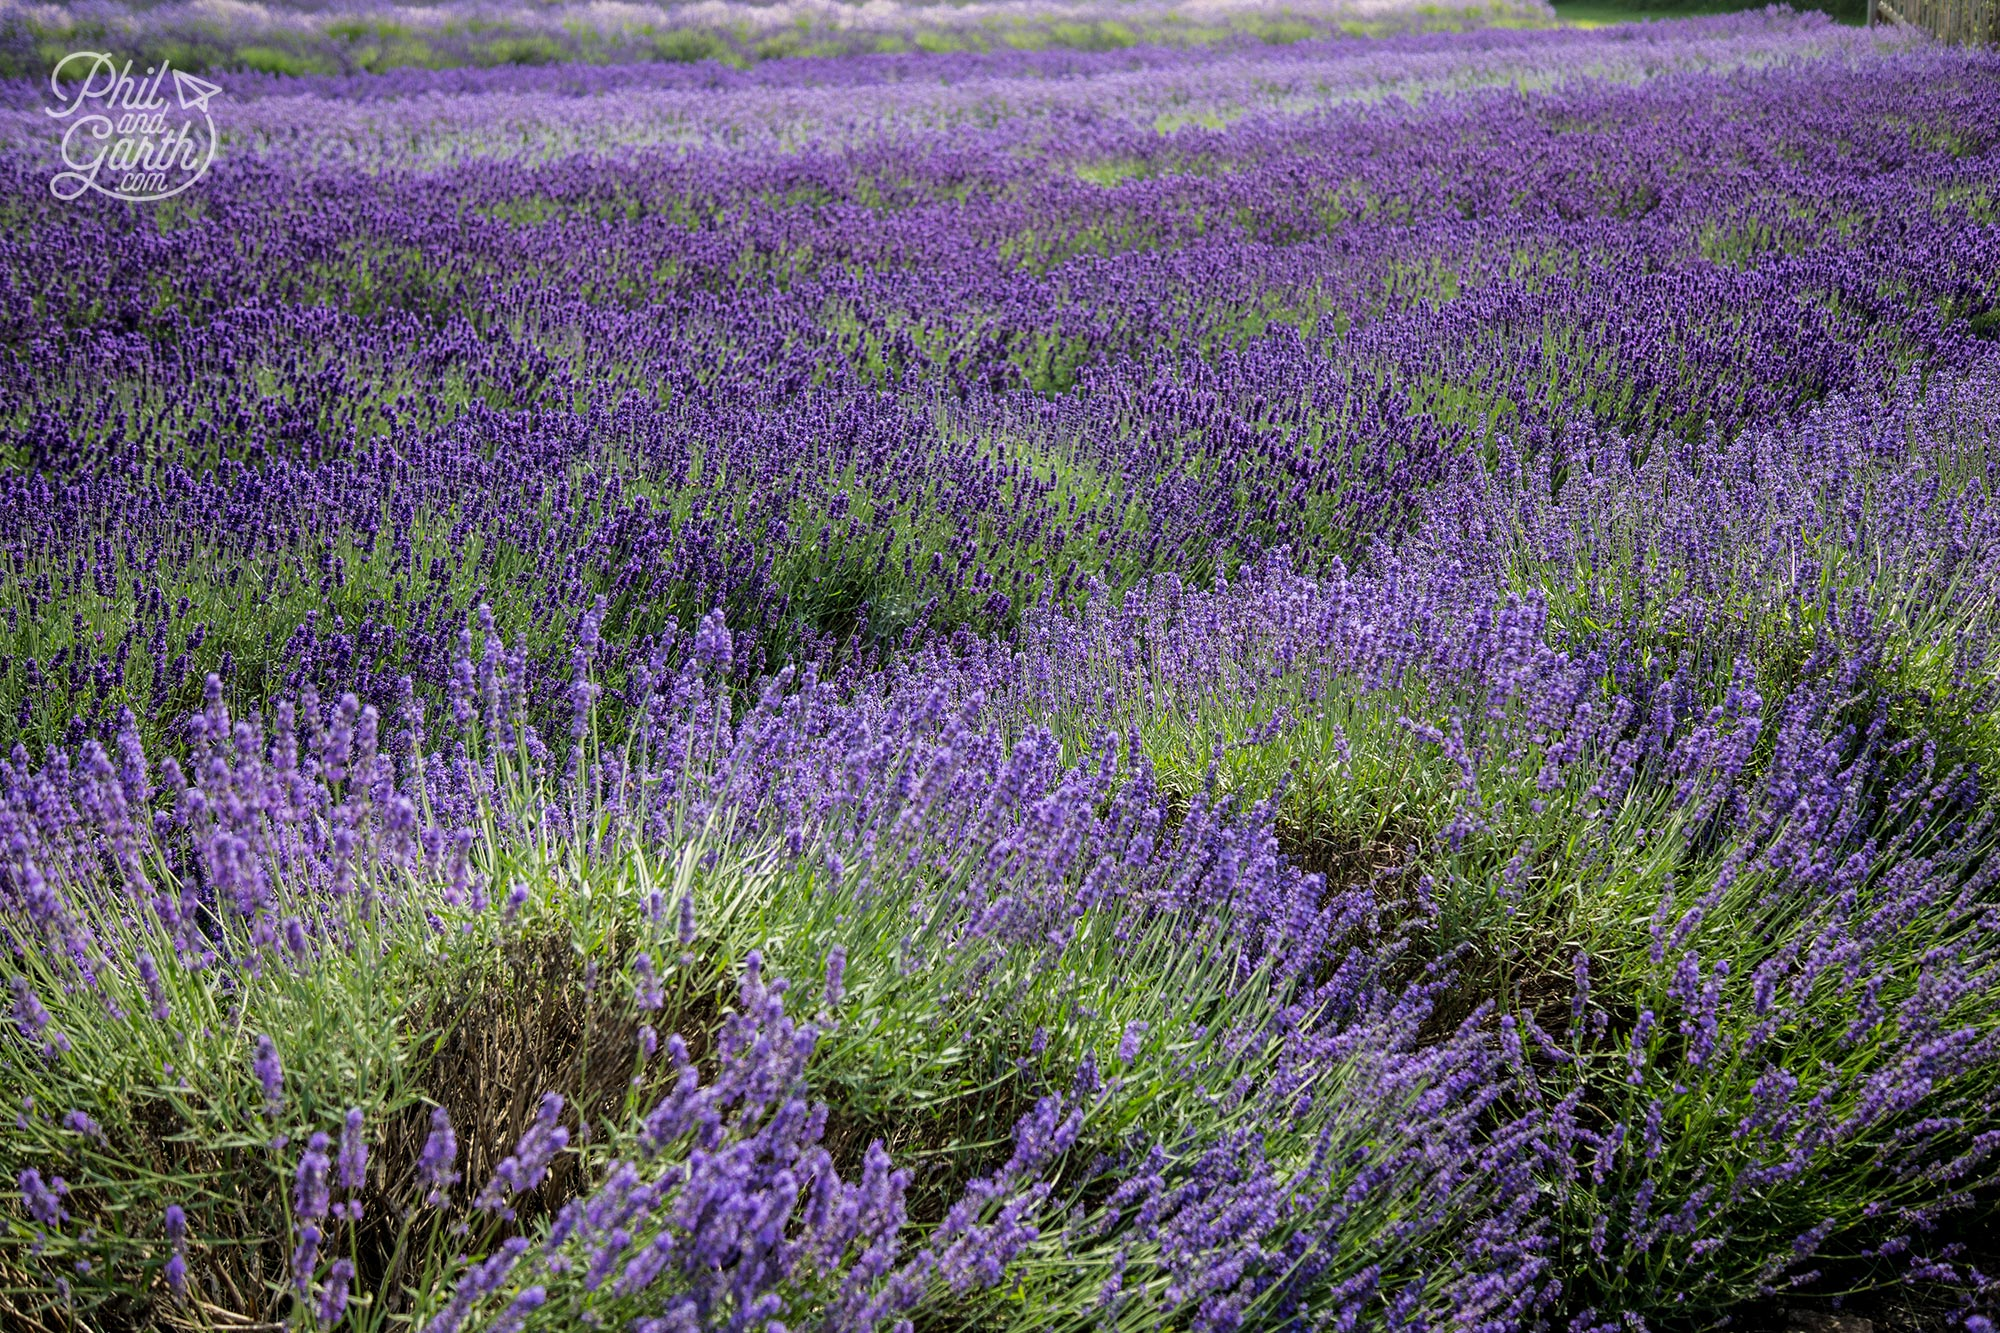 Rows of different types of lavender